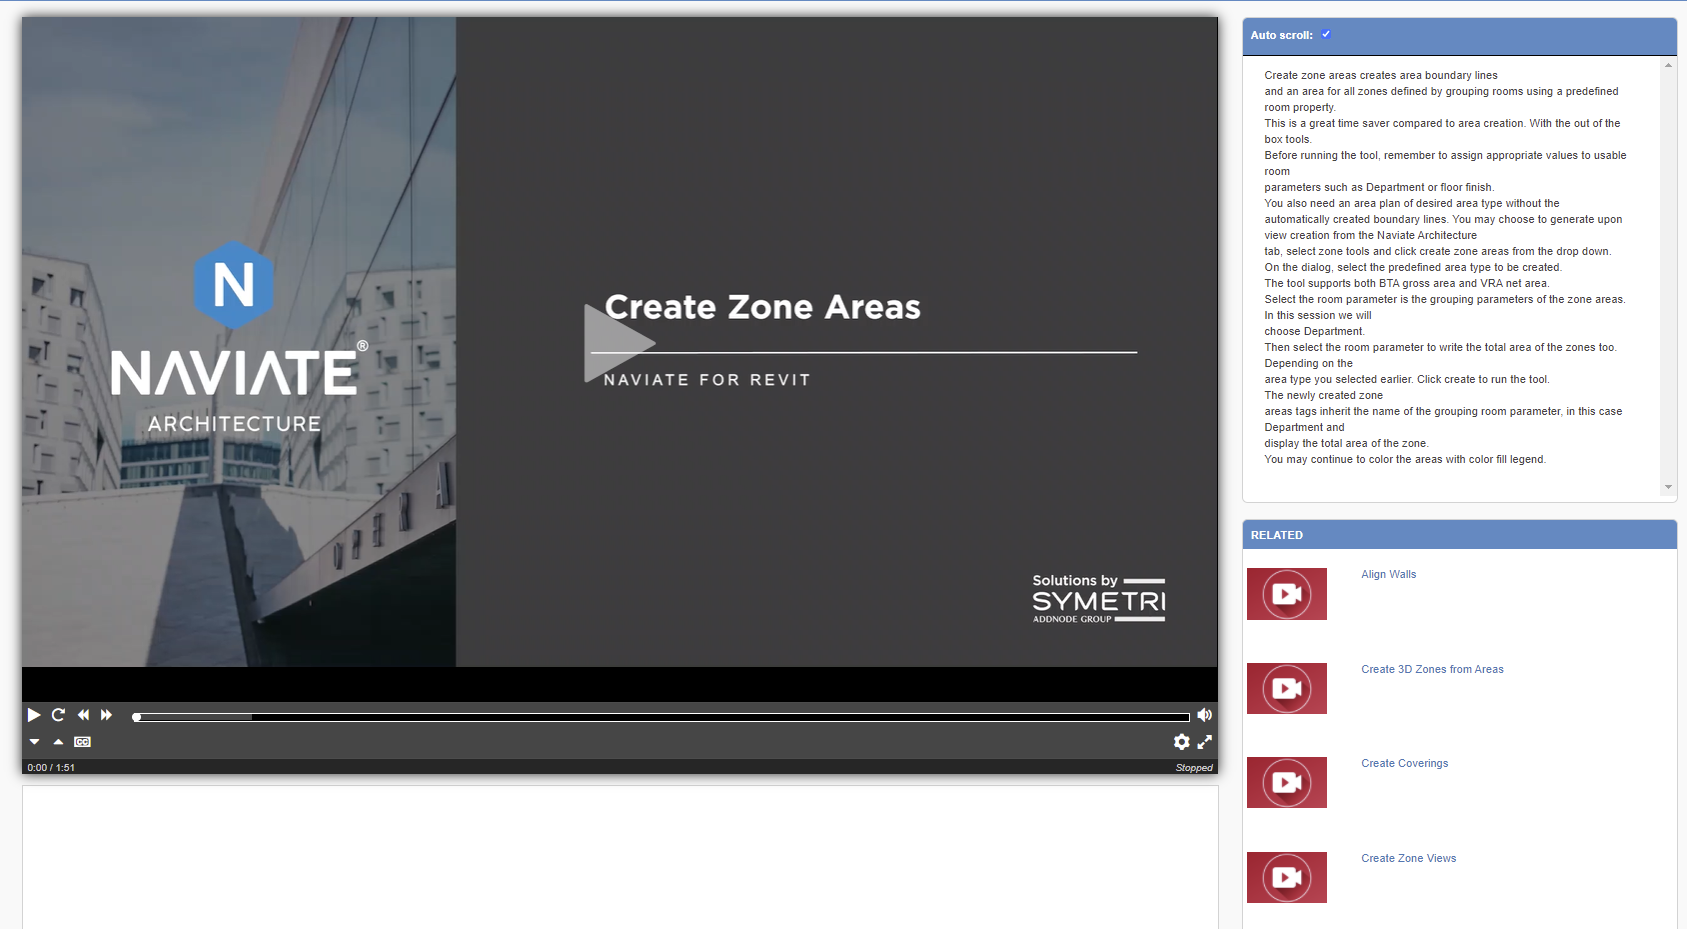 21 FEB blog - Get added value with your Naviate today - create zone areas